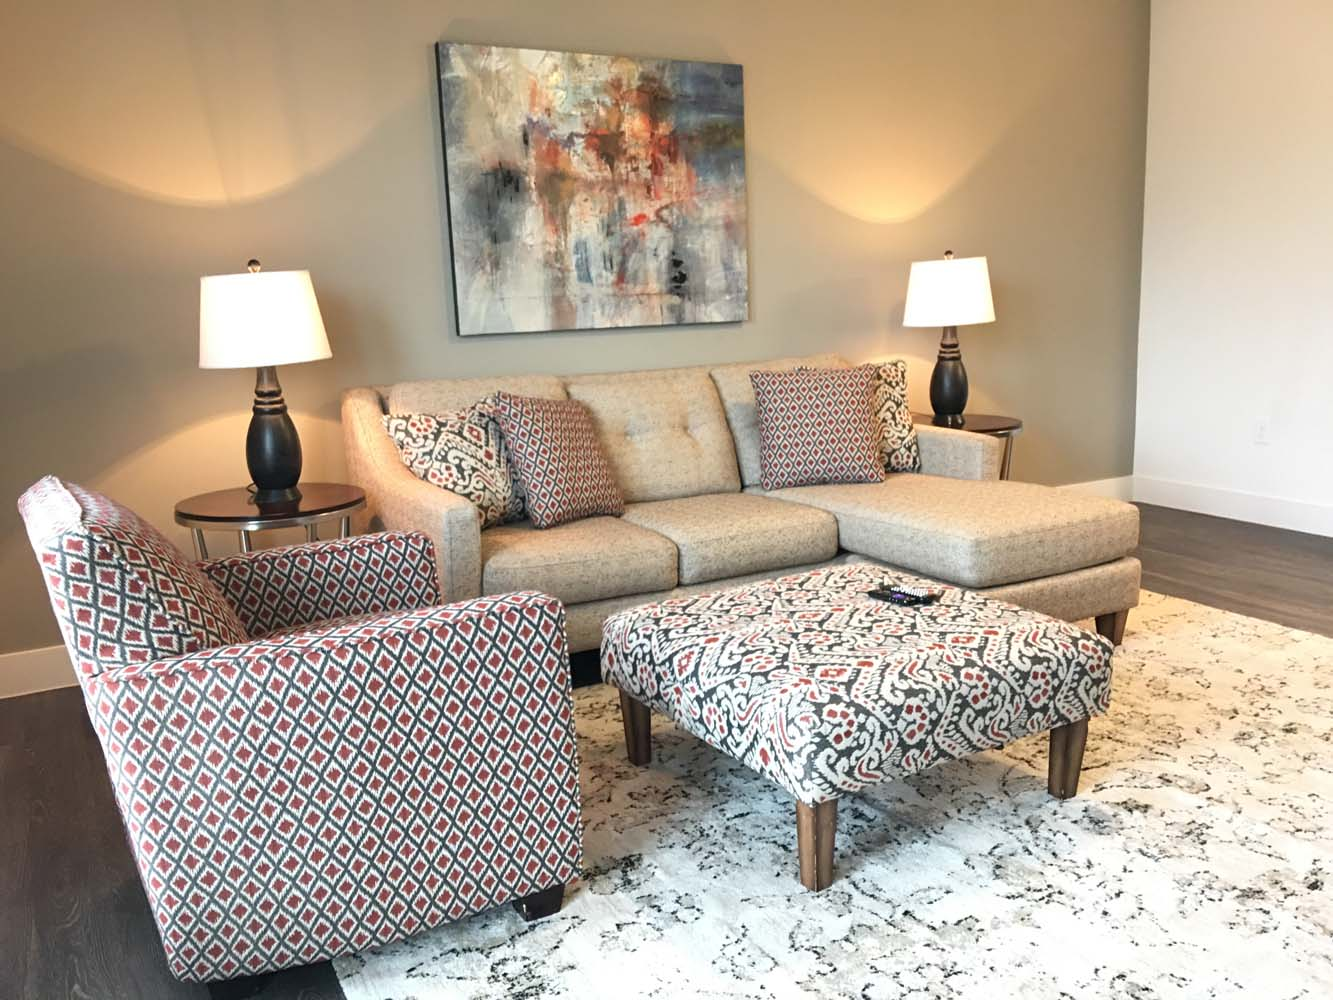 Furniture Rental Dallas And Ft Worth Furniture Options